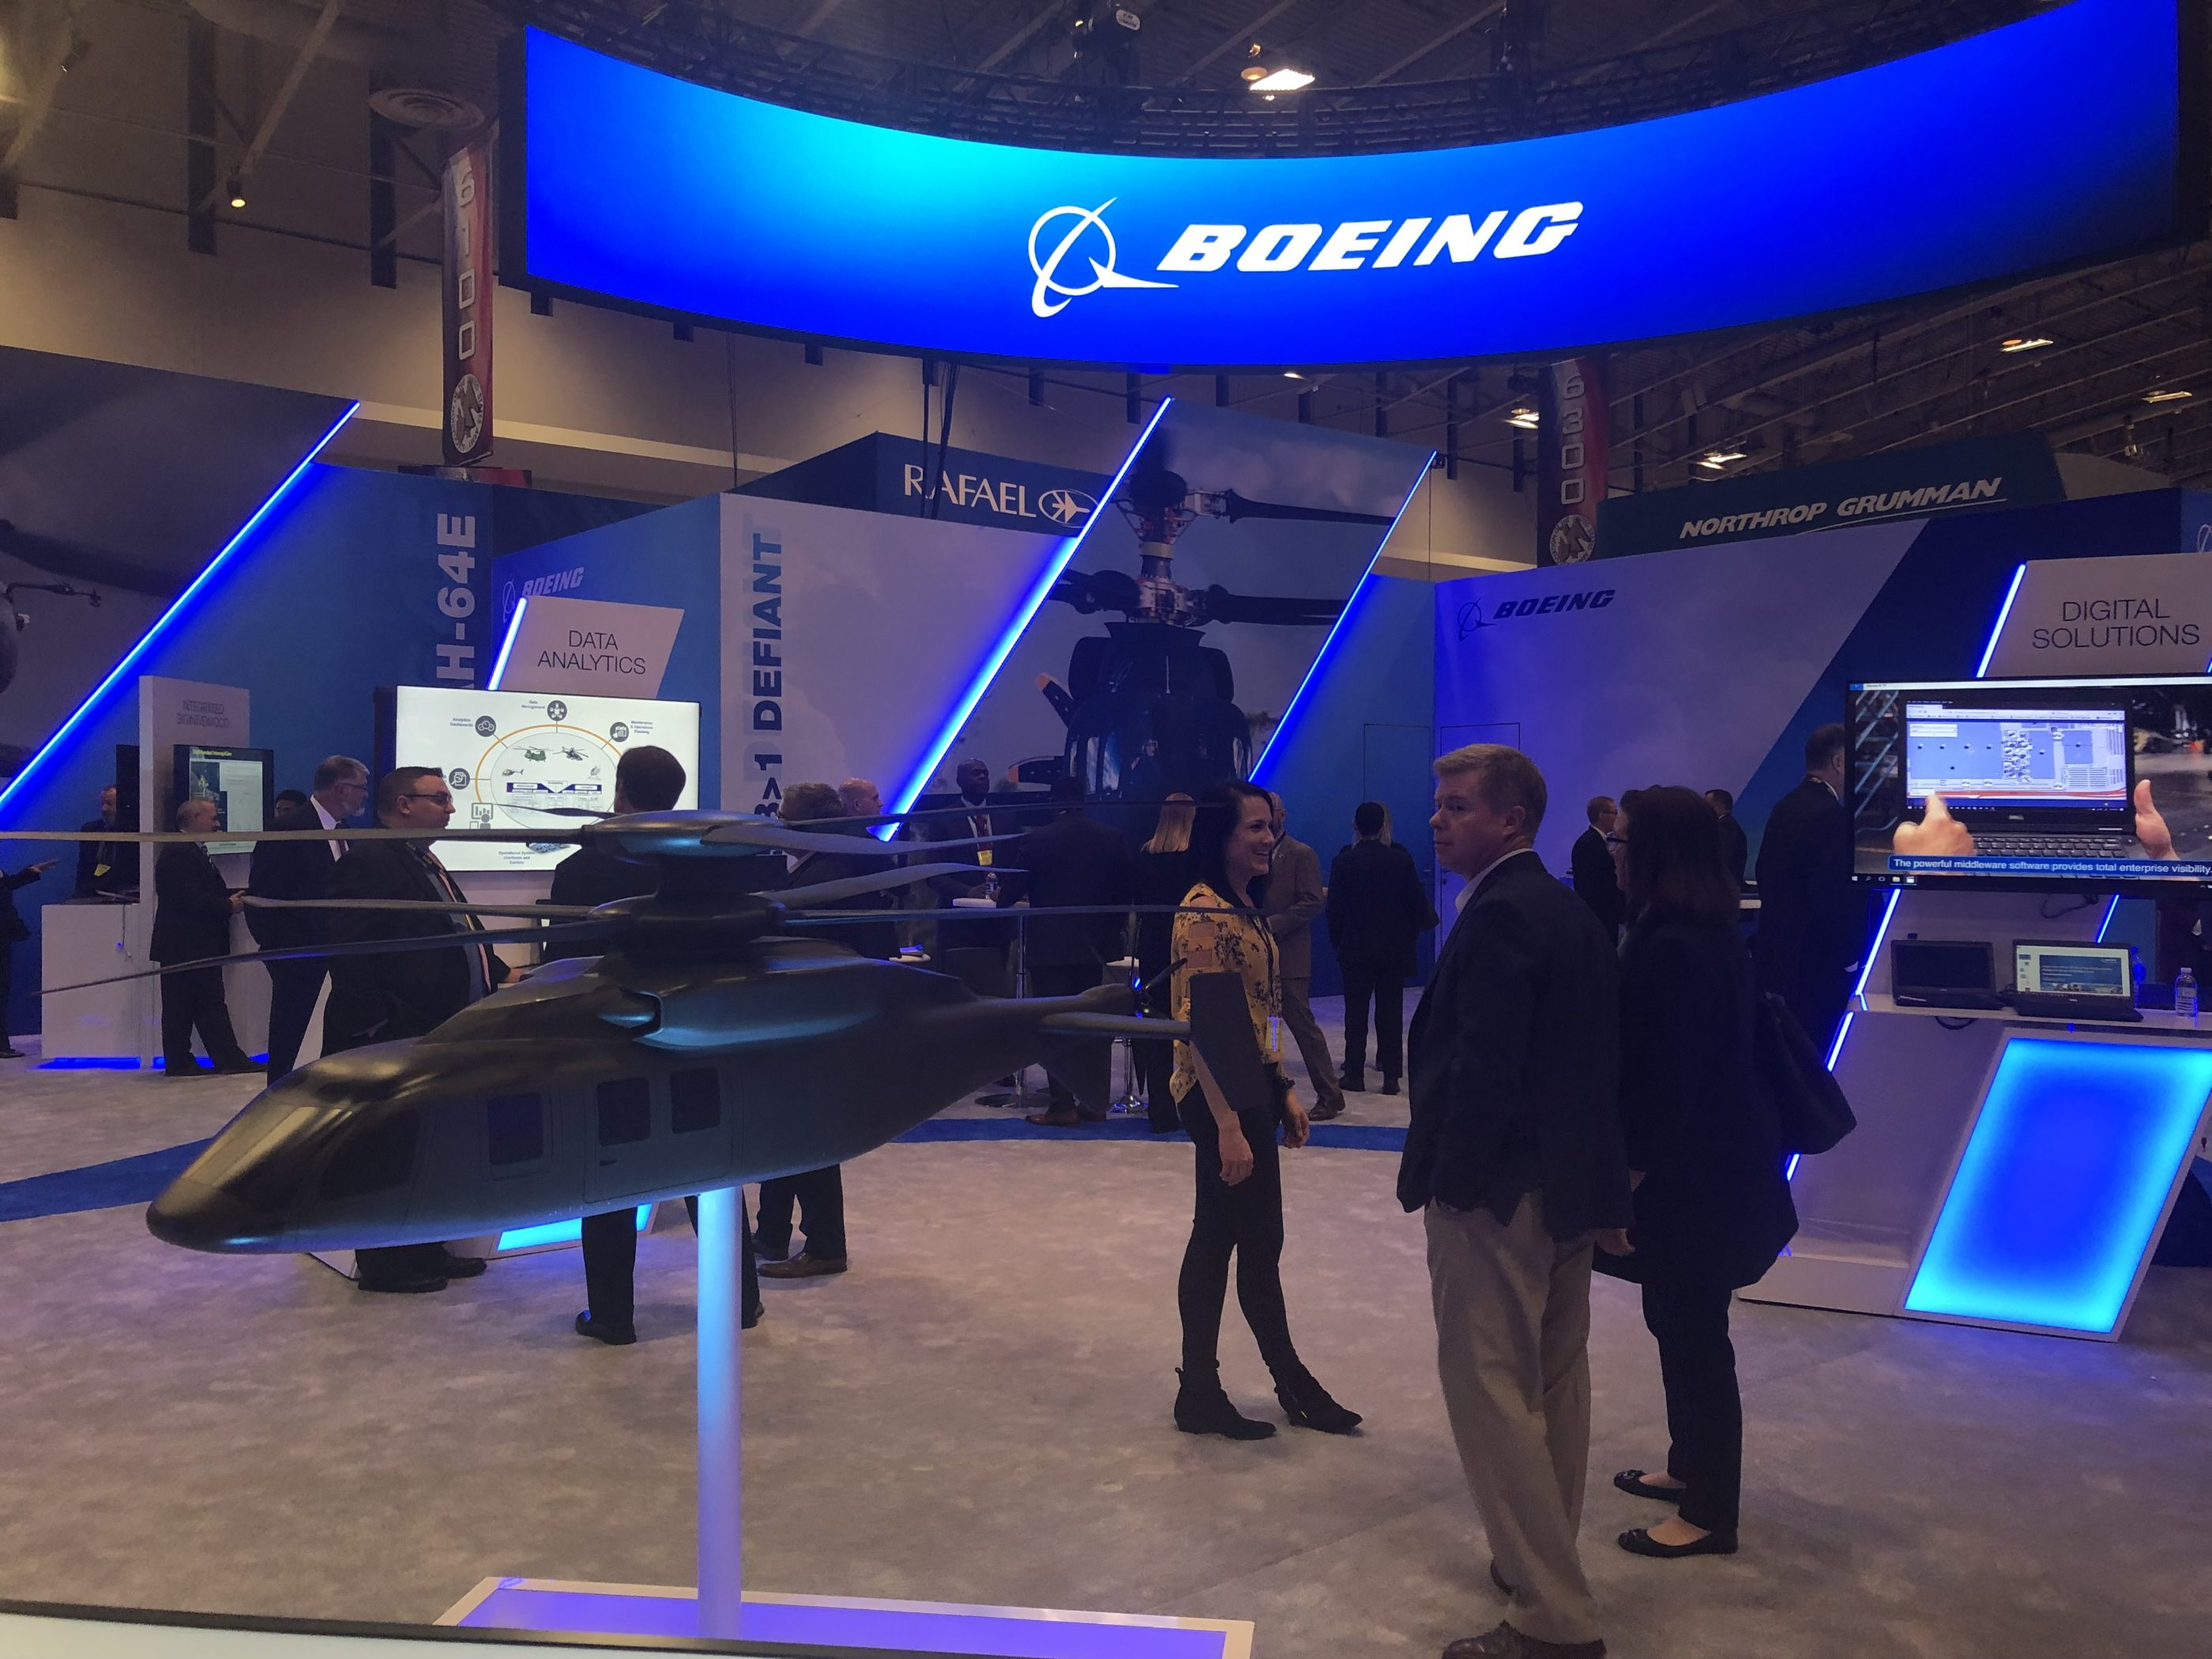 Boeing AUSA booth